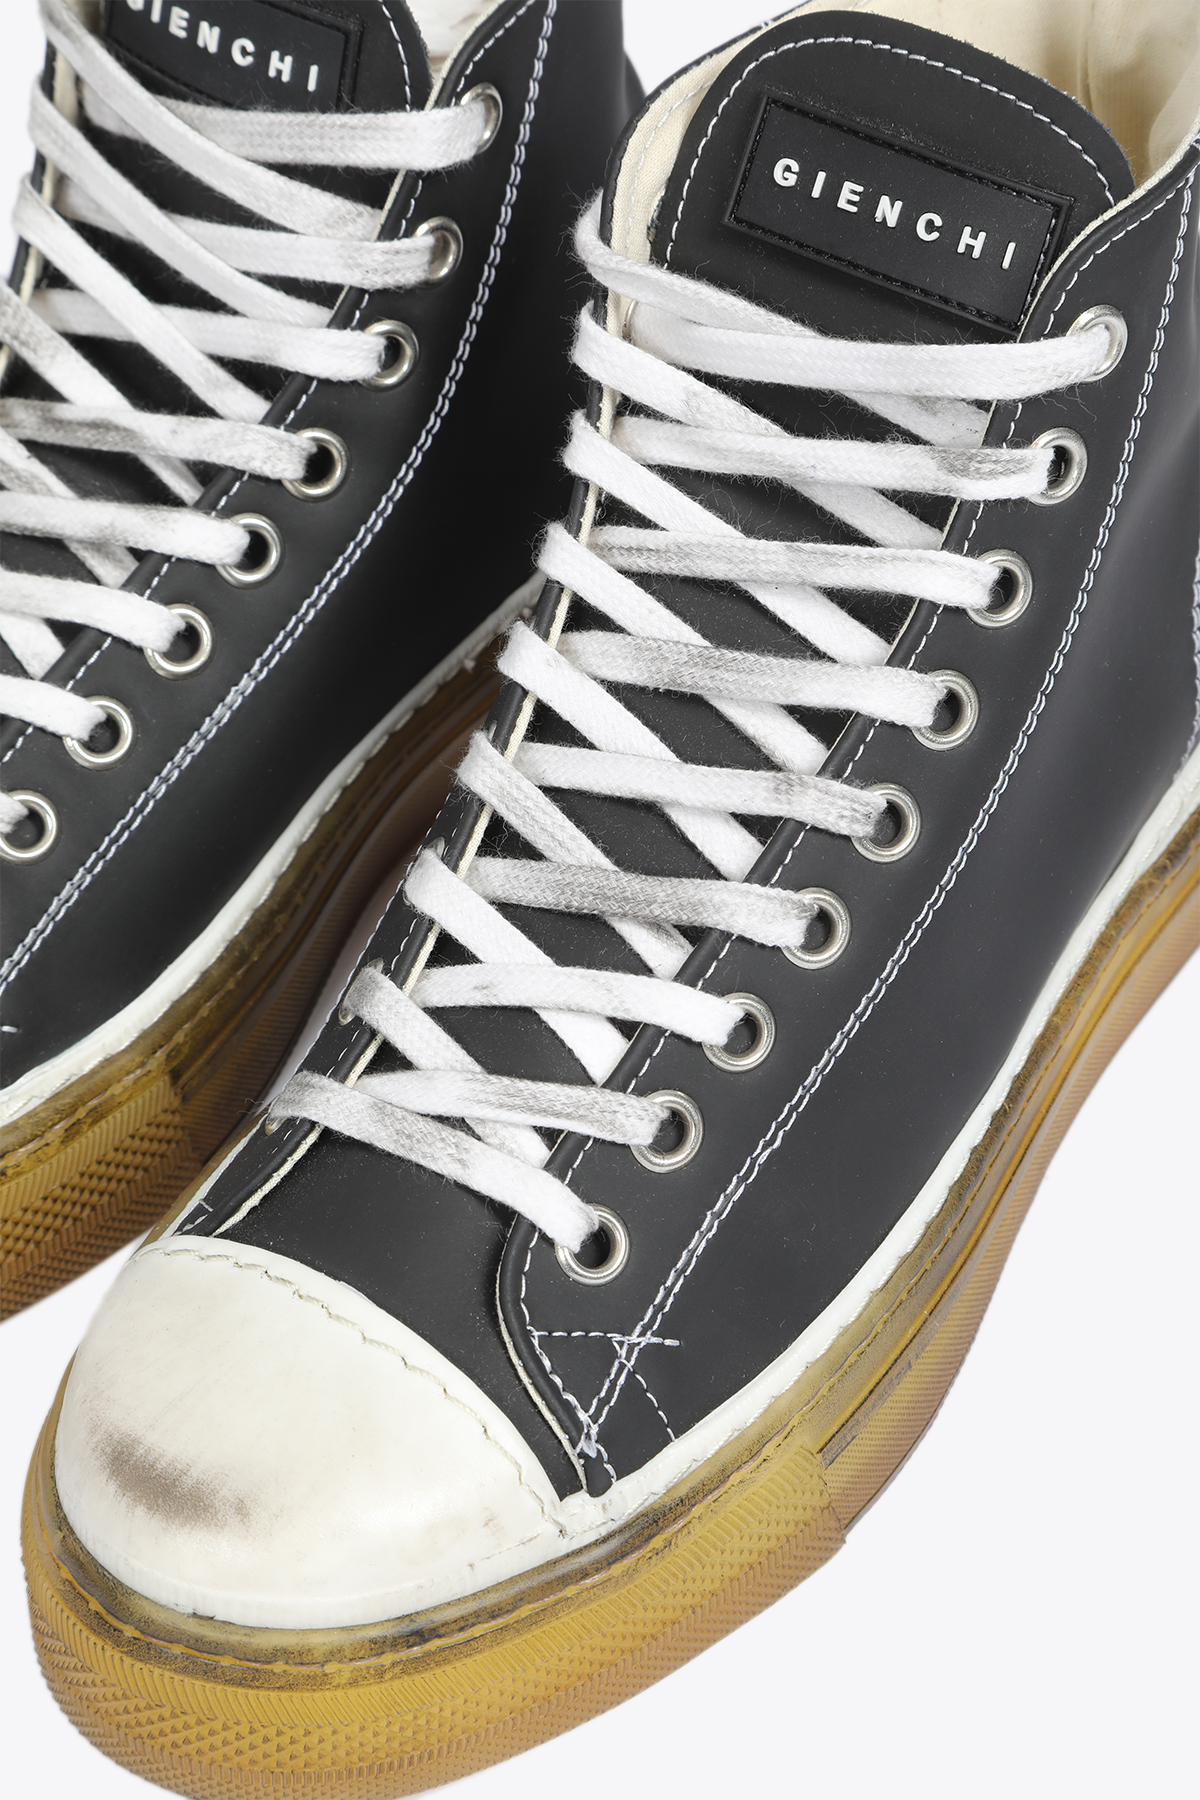 J.M. HIGH INIET DOUBLE SOLE GIENCHI   10000039   GXUALTN000GOM0B999 J.M. HIGH INIET DOUBLBLACK/NATURAL